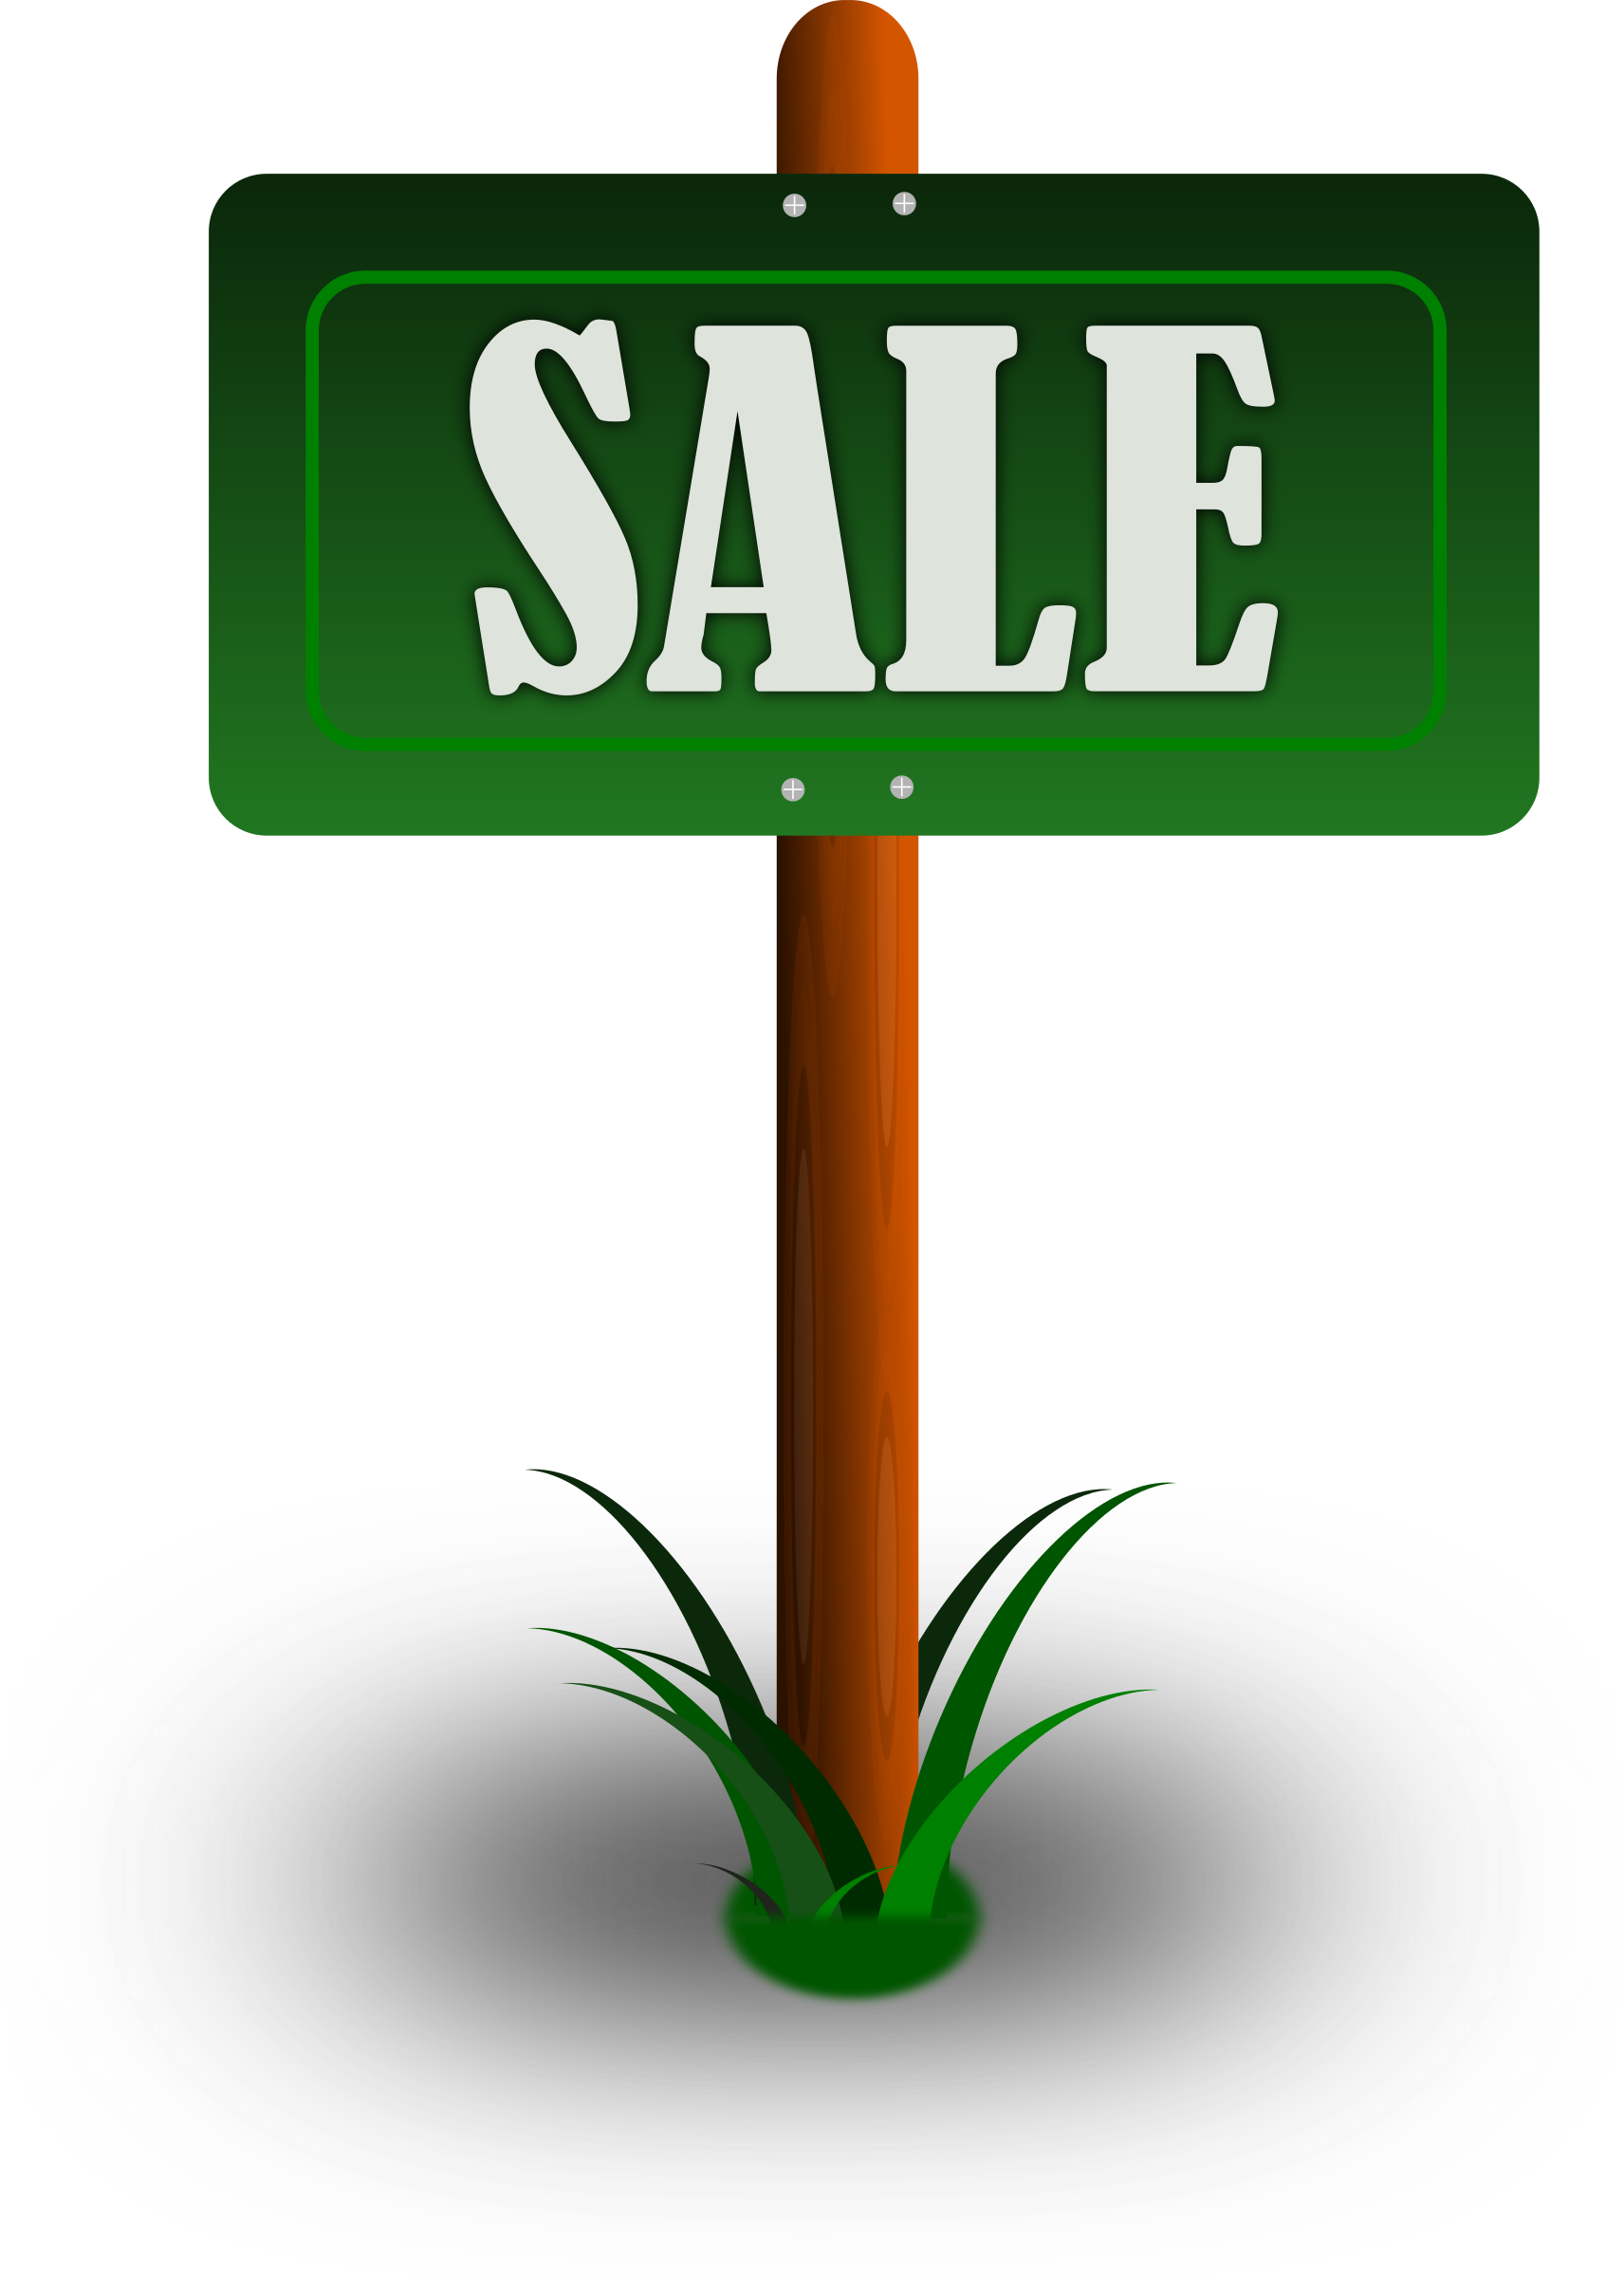 Yard sale sign png. Icons free and downloads